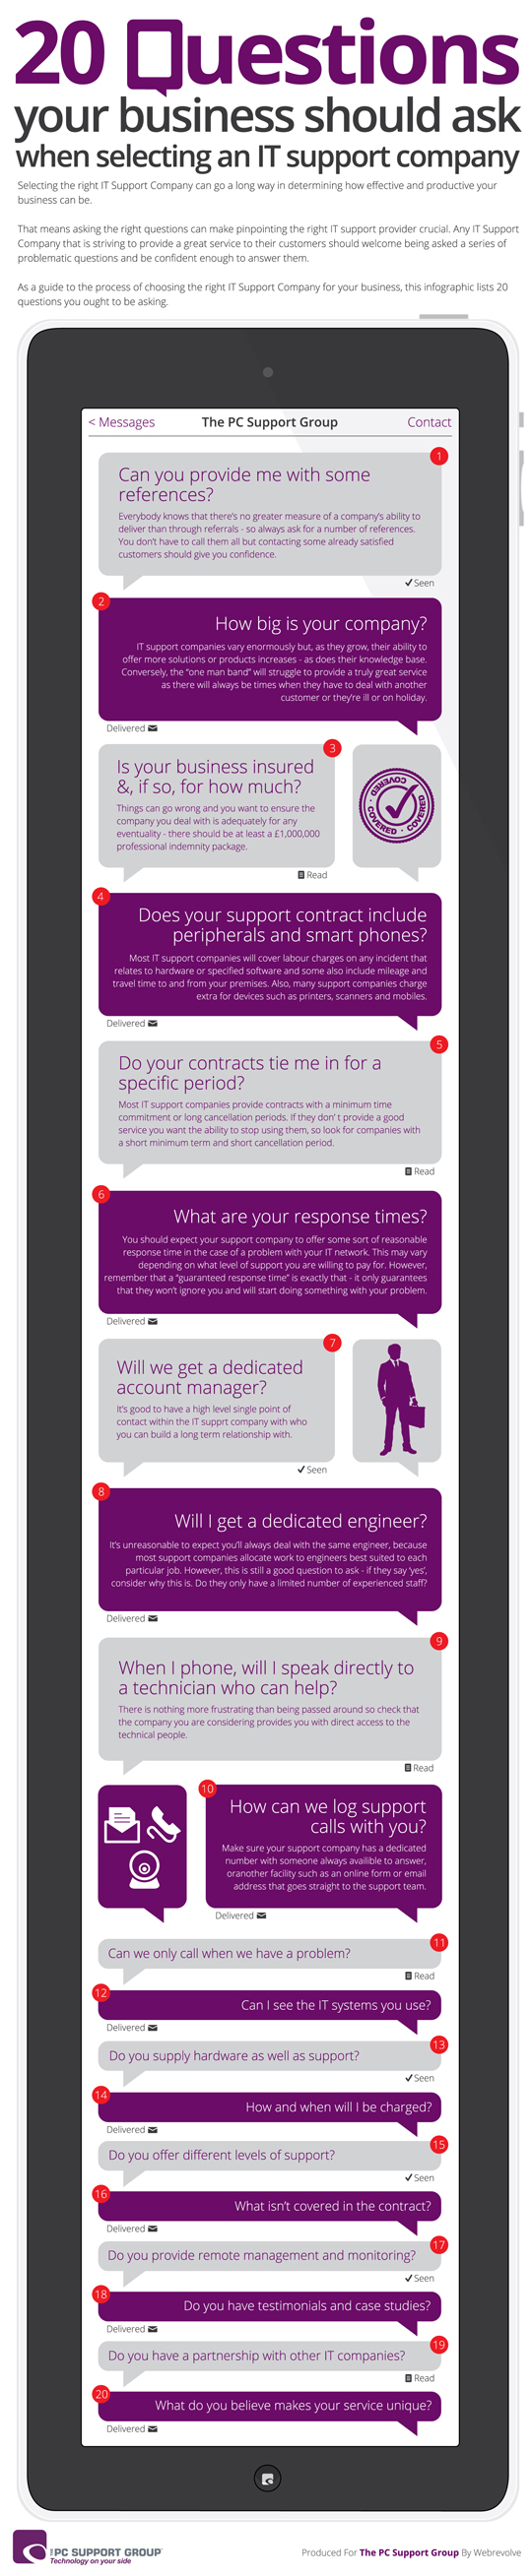 20-Questions-When-Selecting-An-It-Support-Company-Infographic